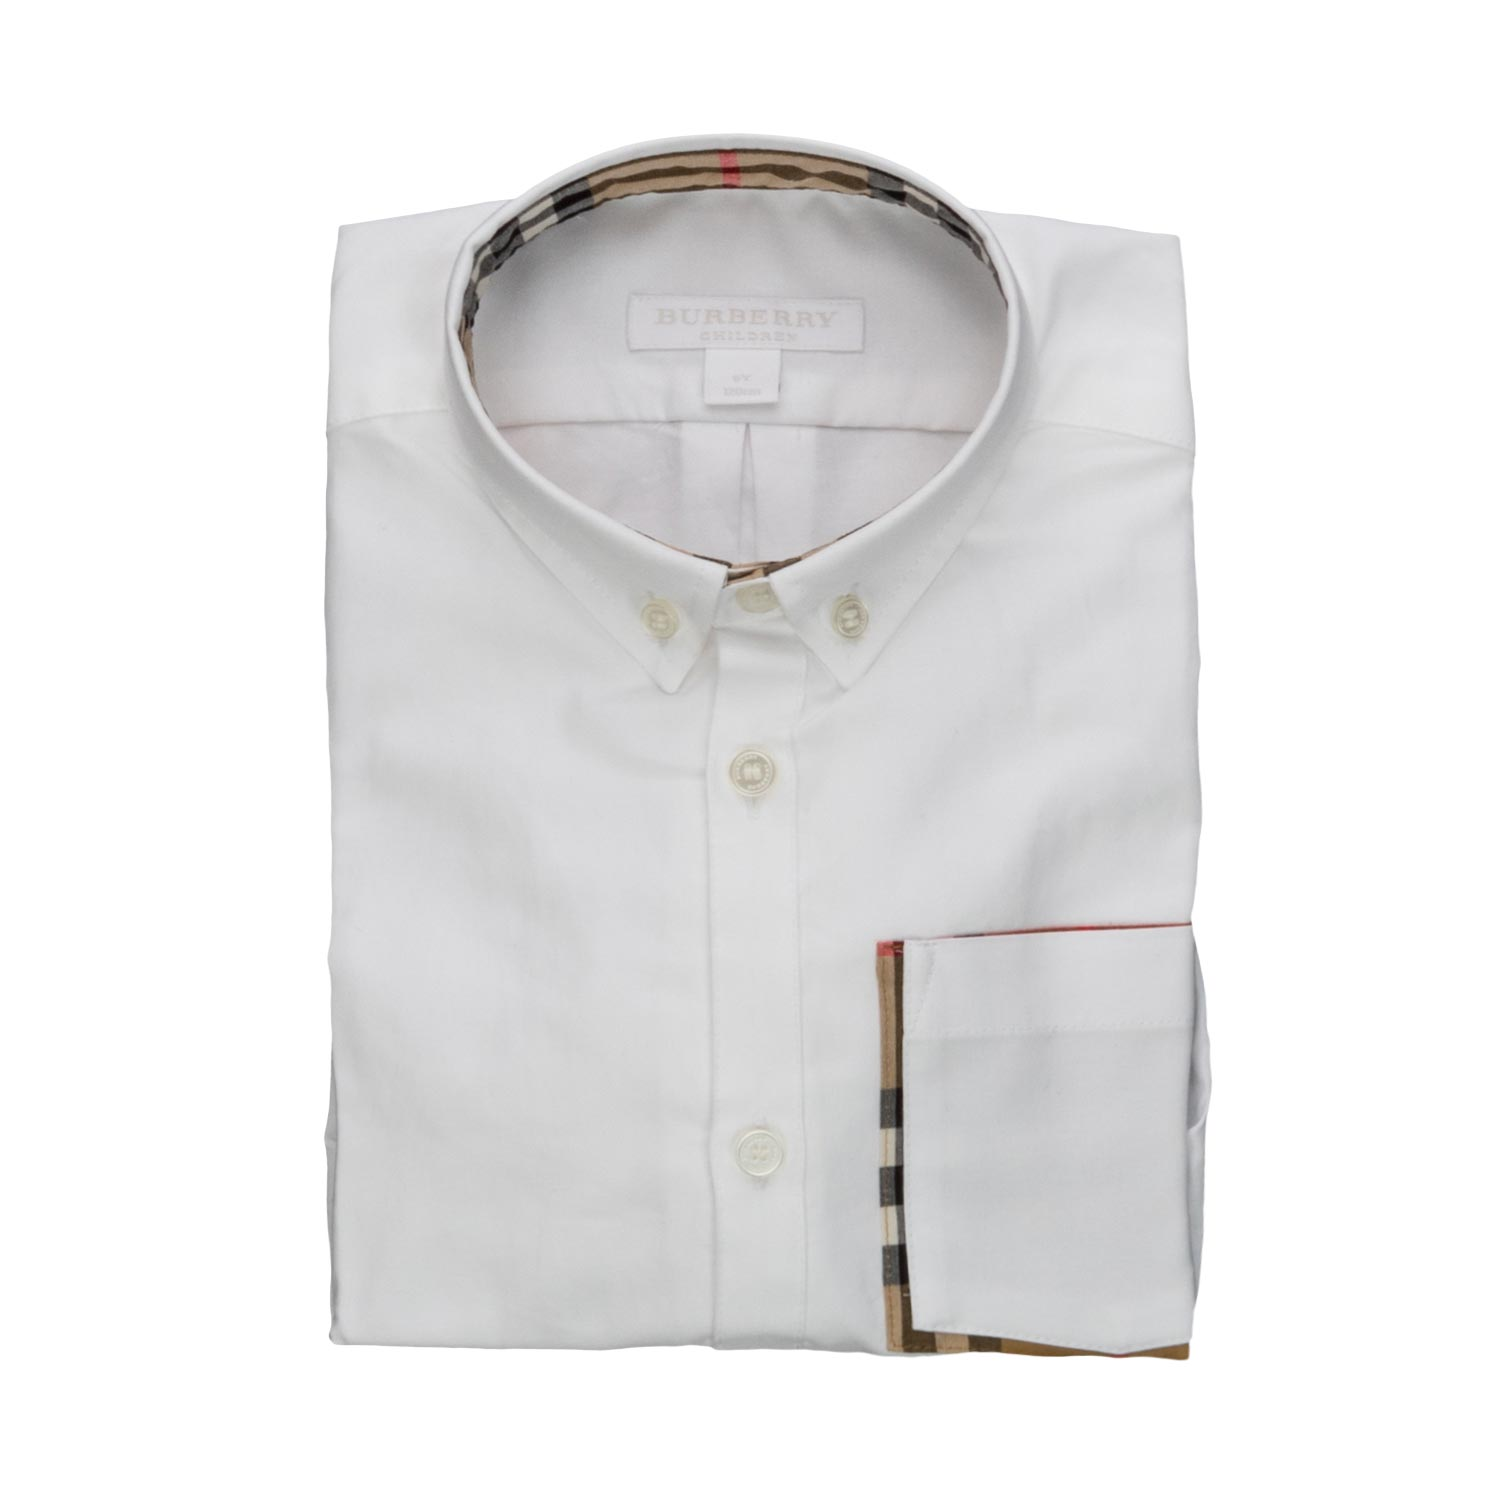 outlet 8db36 abdd1 Camicia Bianca Bambino Teenager